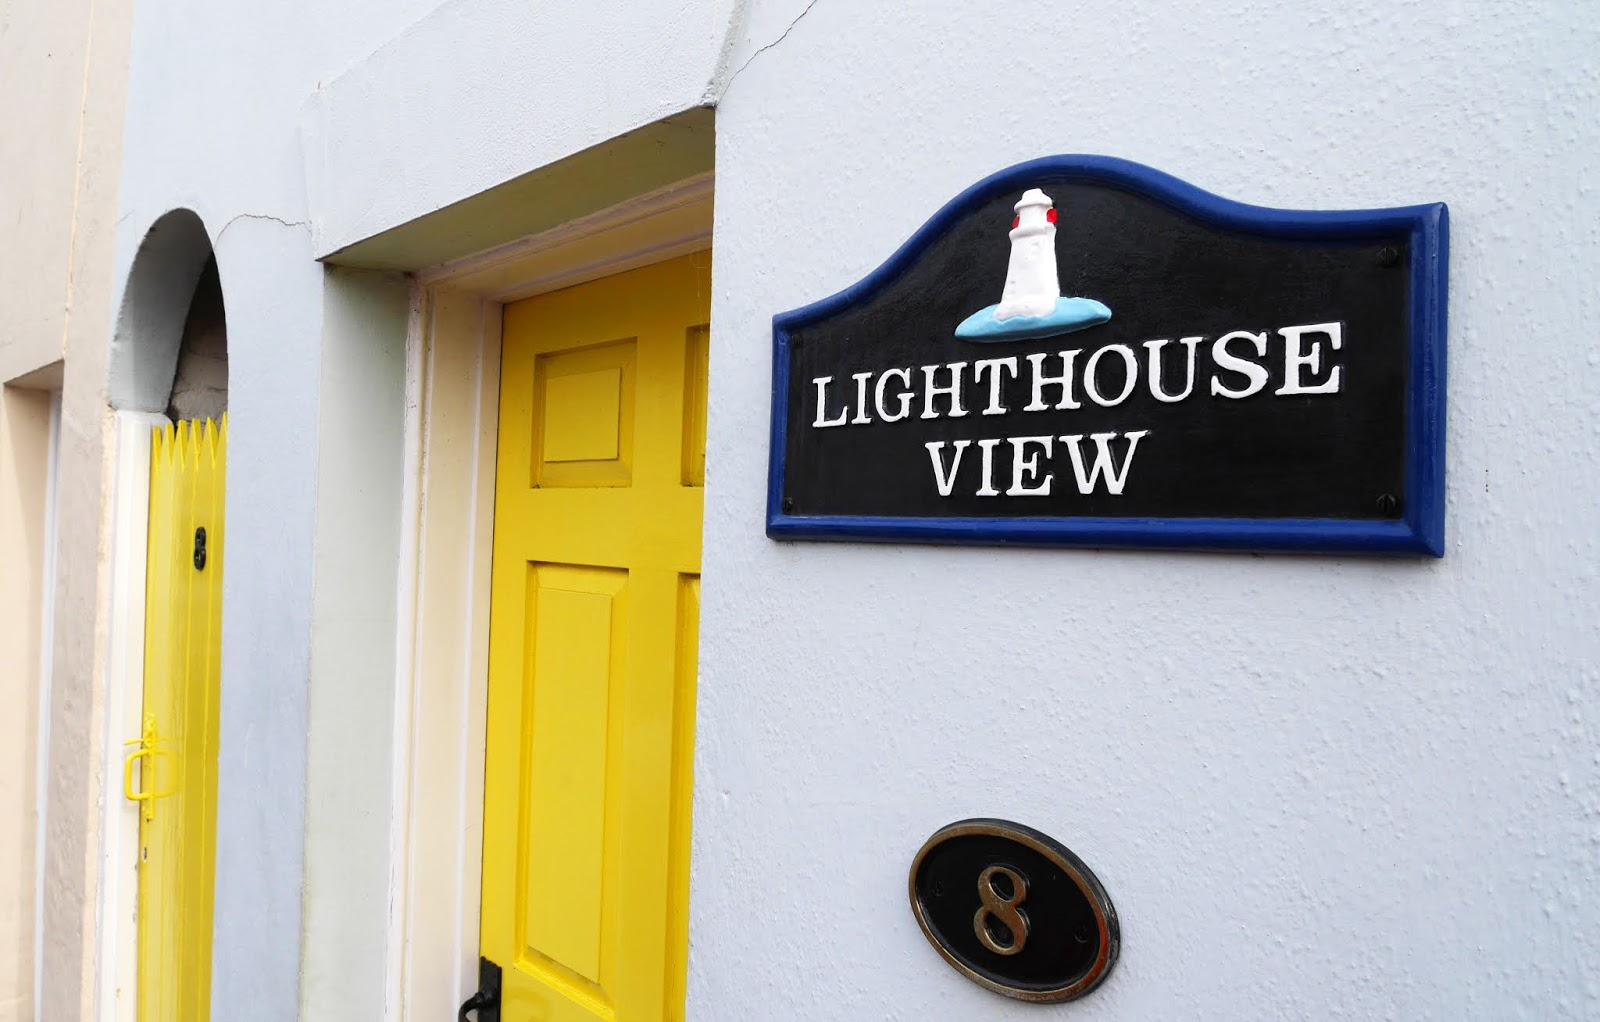 Lighthouse View house in Southwold, Suffolk